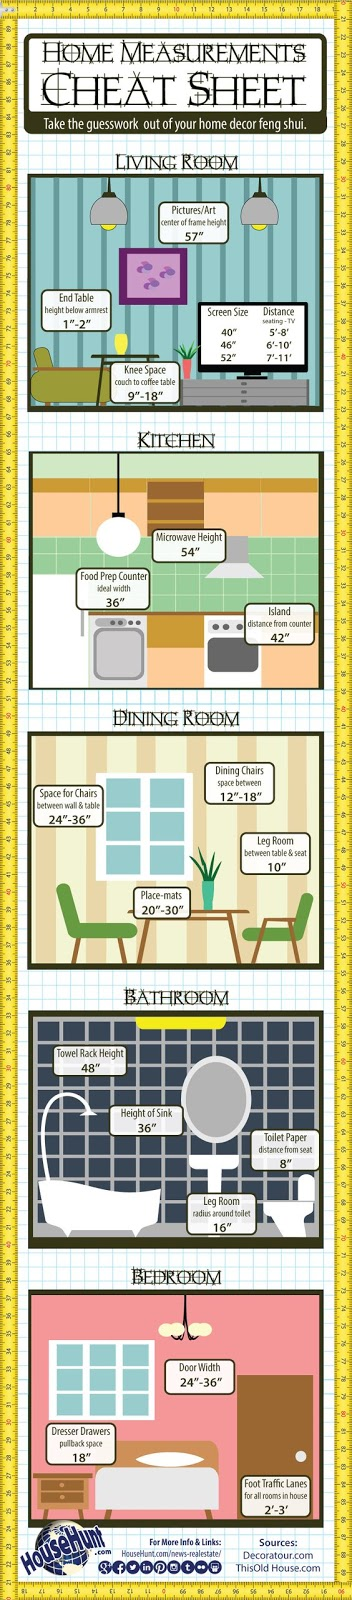 Home measurements infographic interior design cheat sheet on Hello Lovely Studio